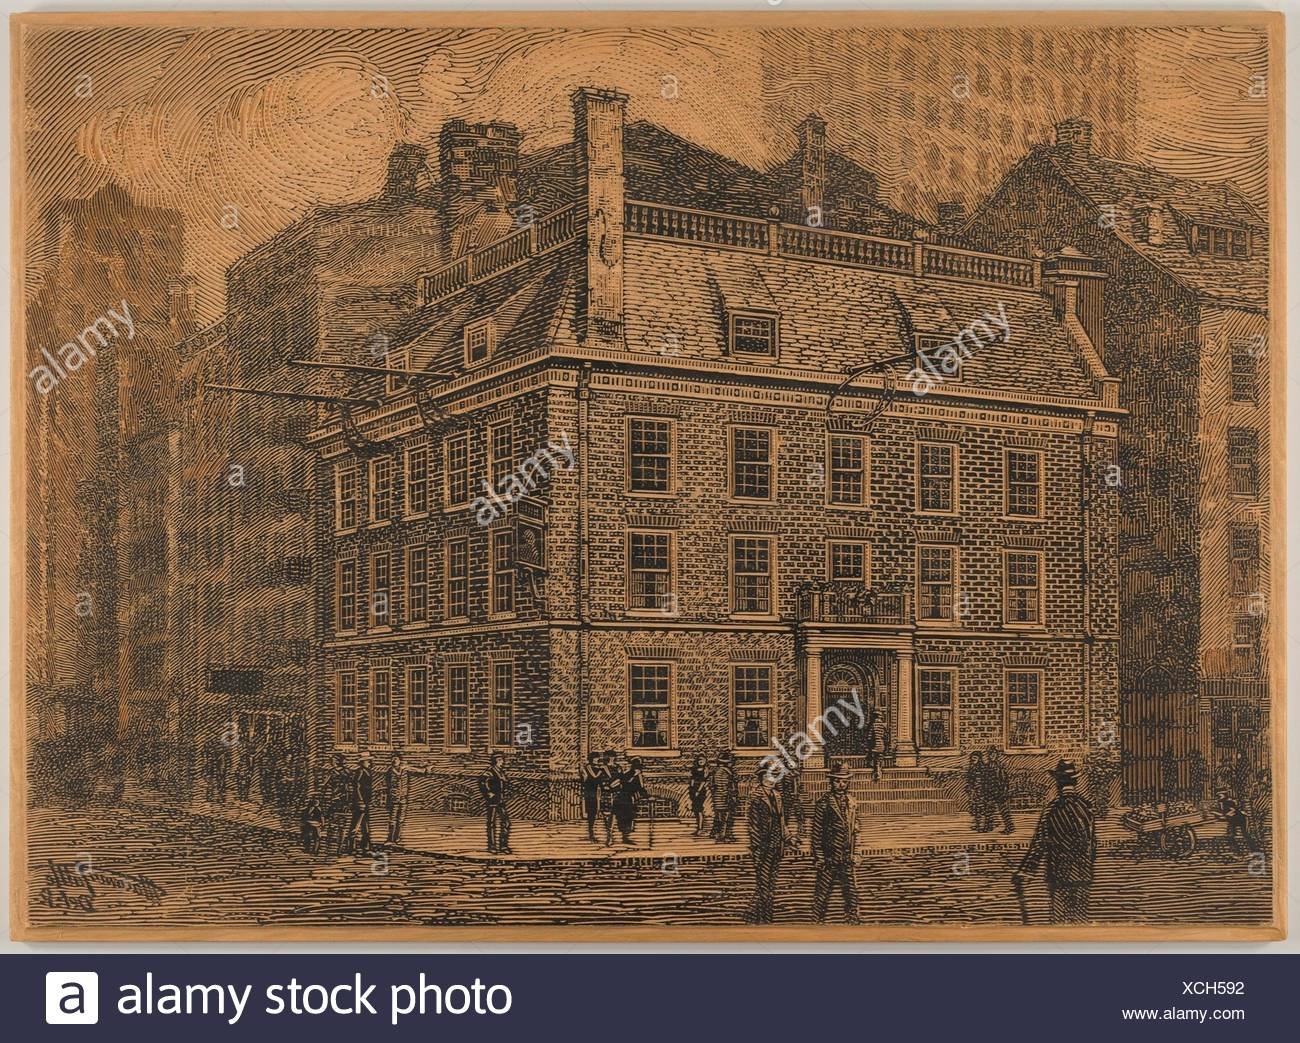 Old Fraunce's Tavern, New York. Artist: Charles Macowin Tuttle (American, 1861-1935); Date: 1880-1935; Medium: Wood engraving block; Dimensions: - Stock Image